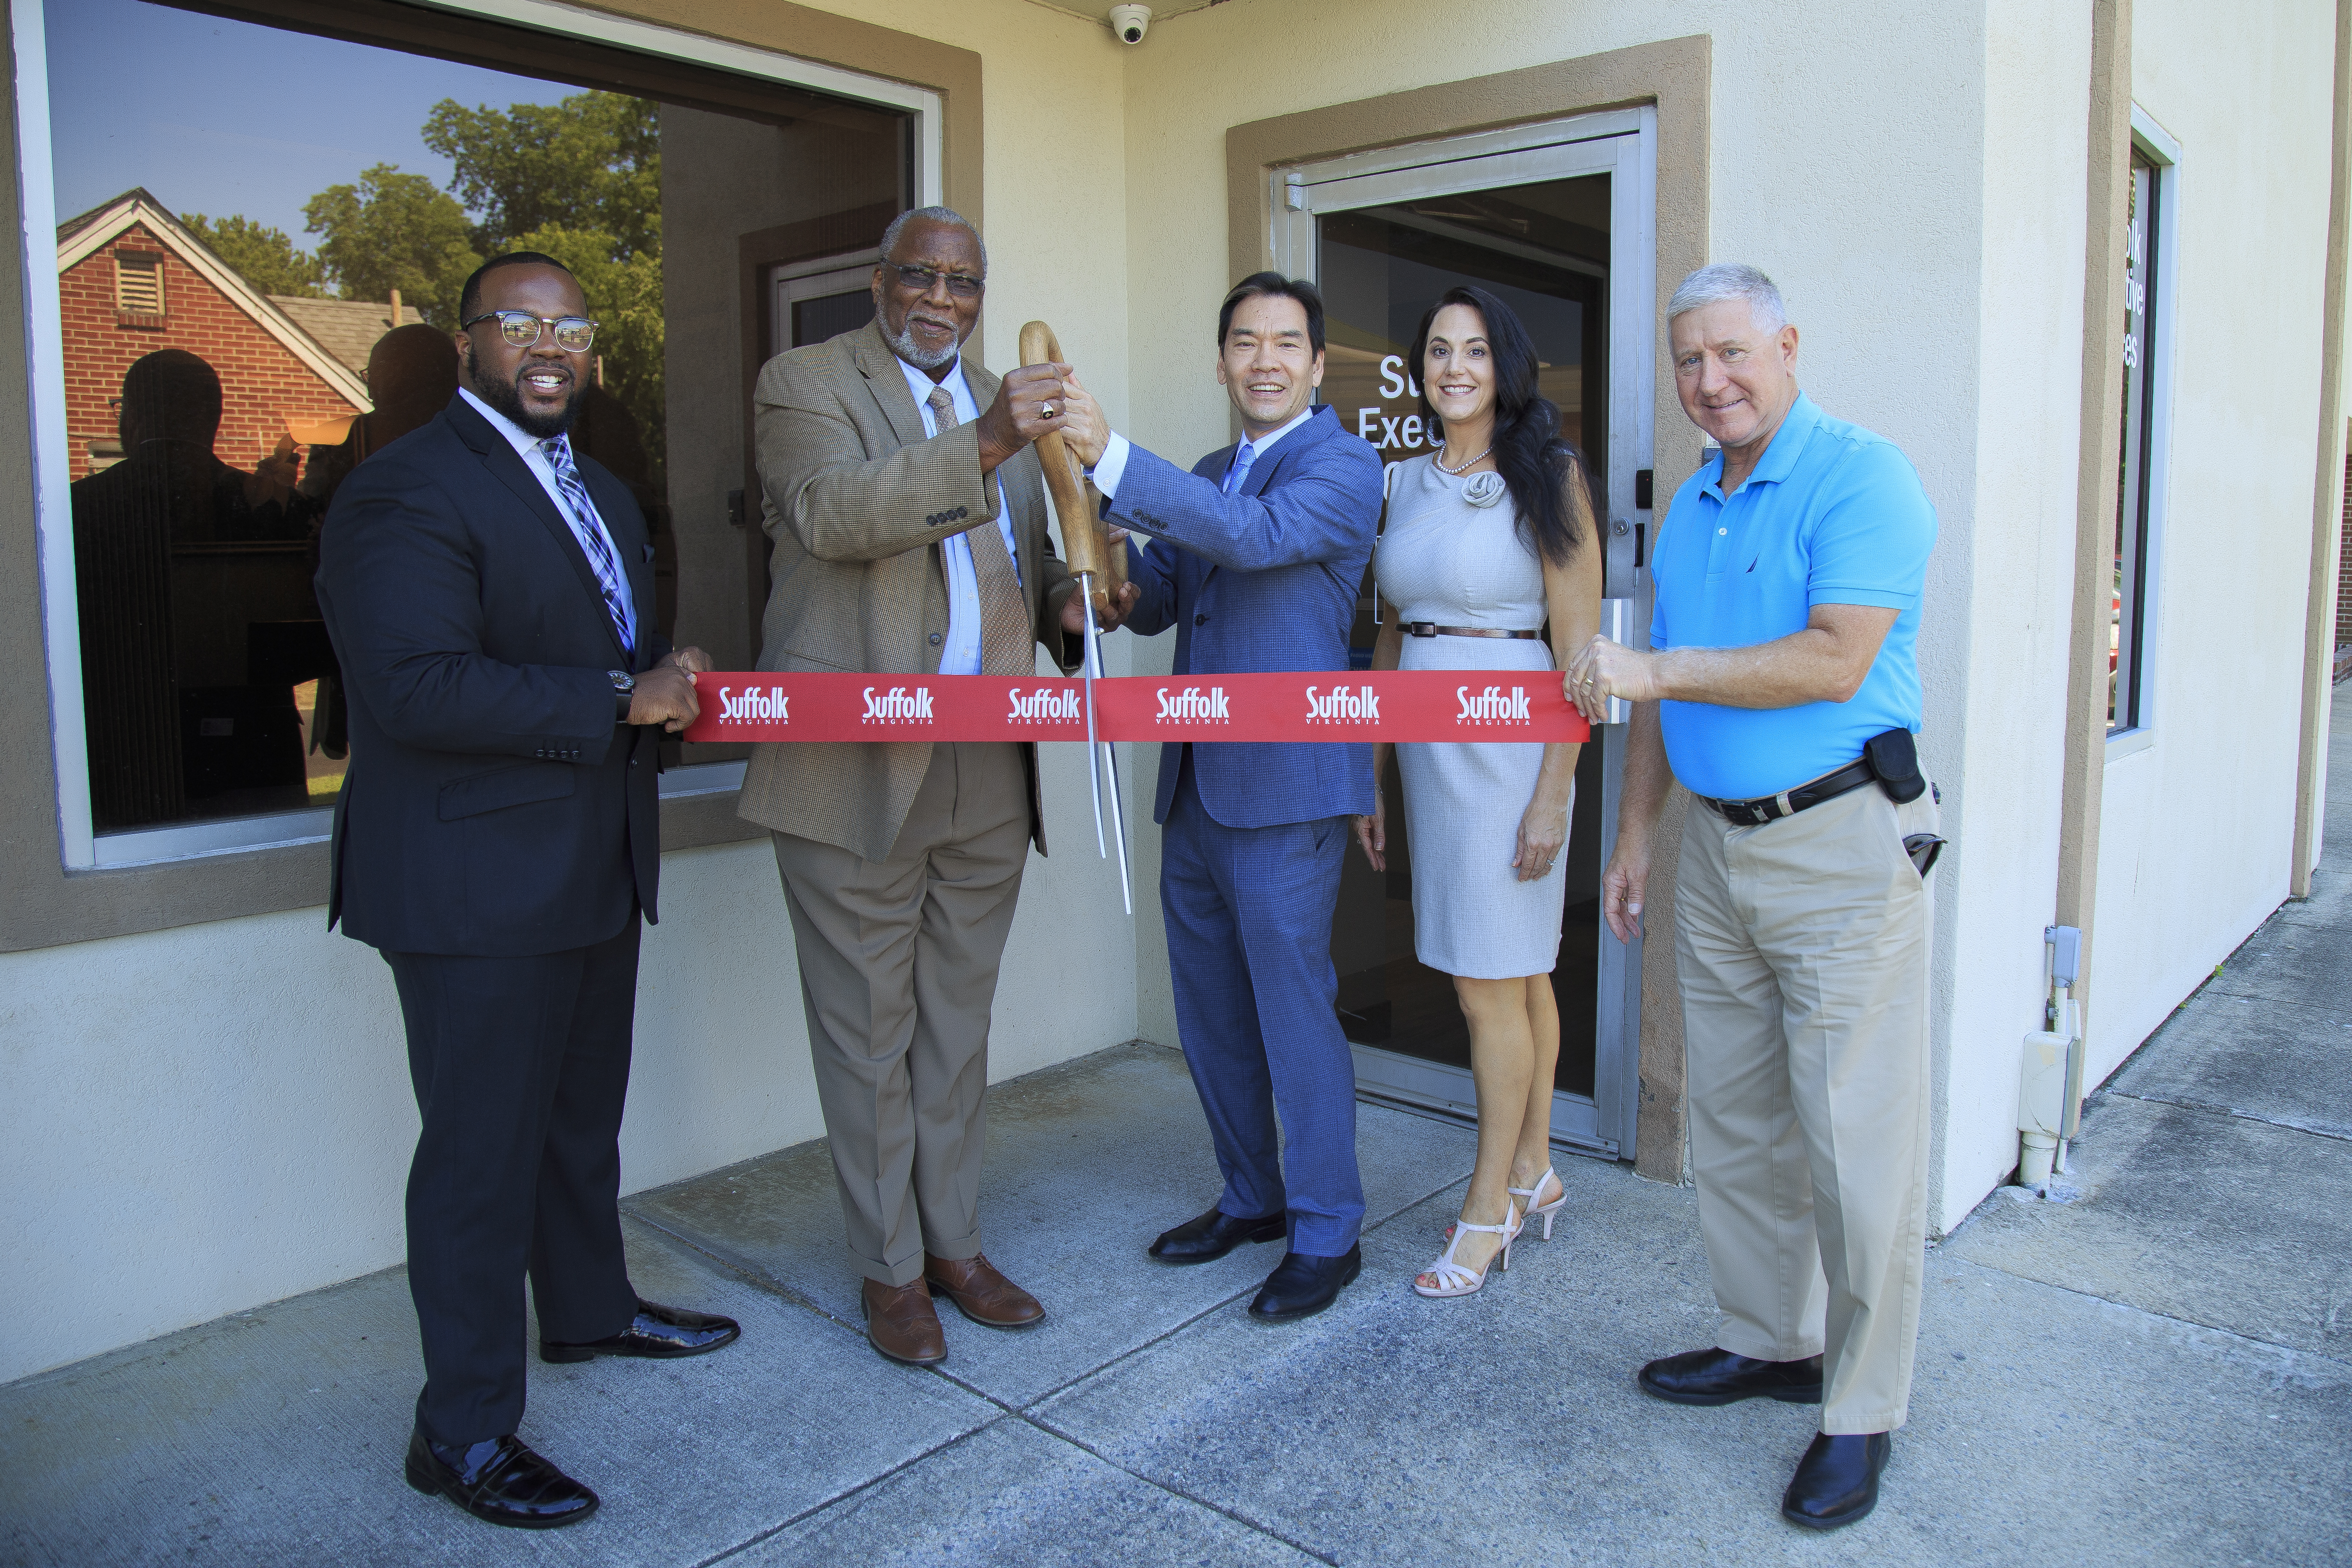 Suffolk Executive Offices Ribbon Cutting